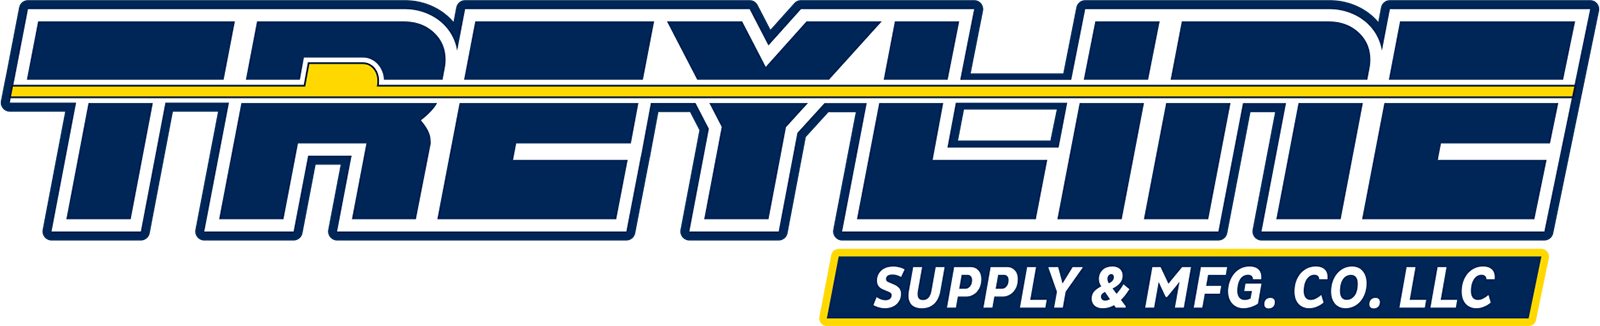 Treyline Supply, LLC